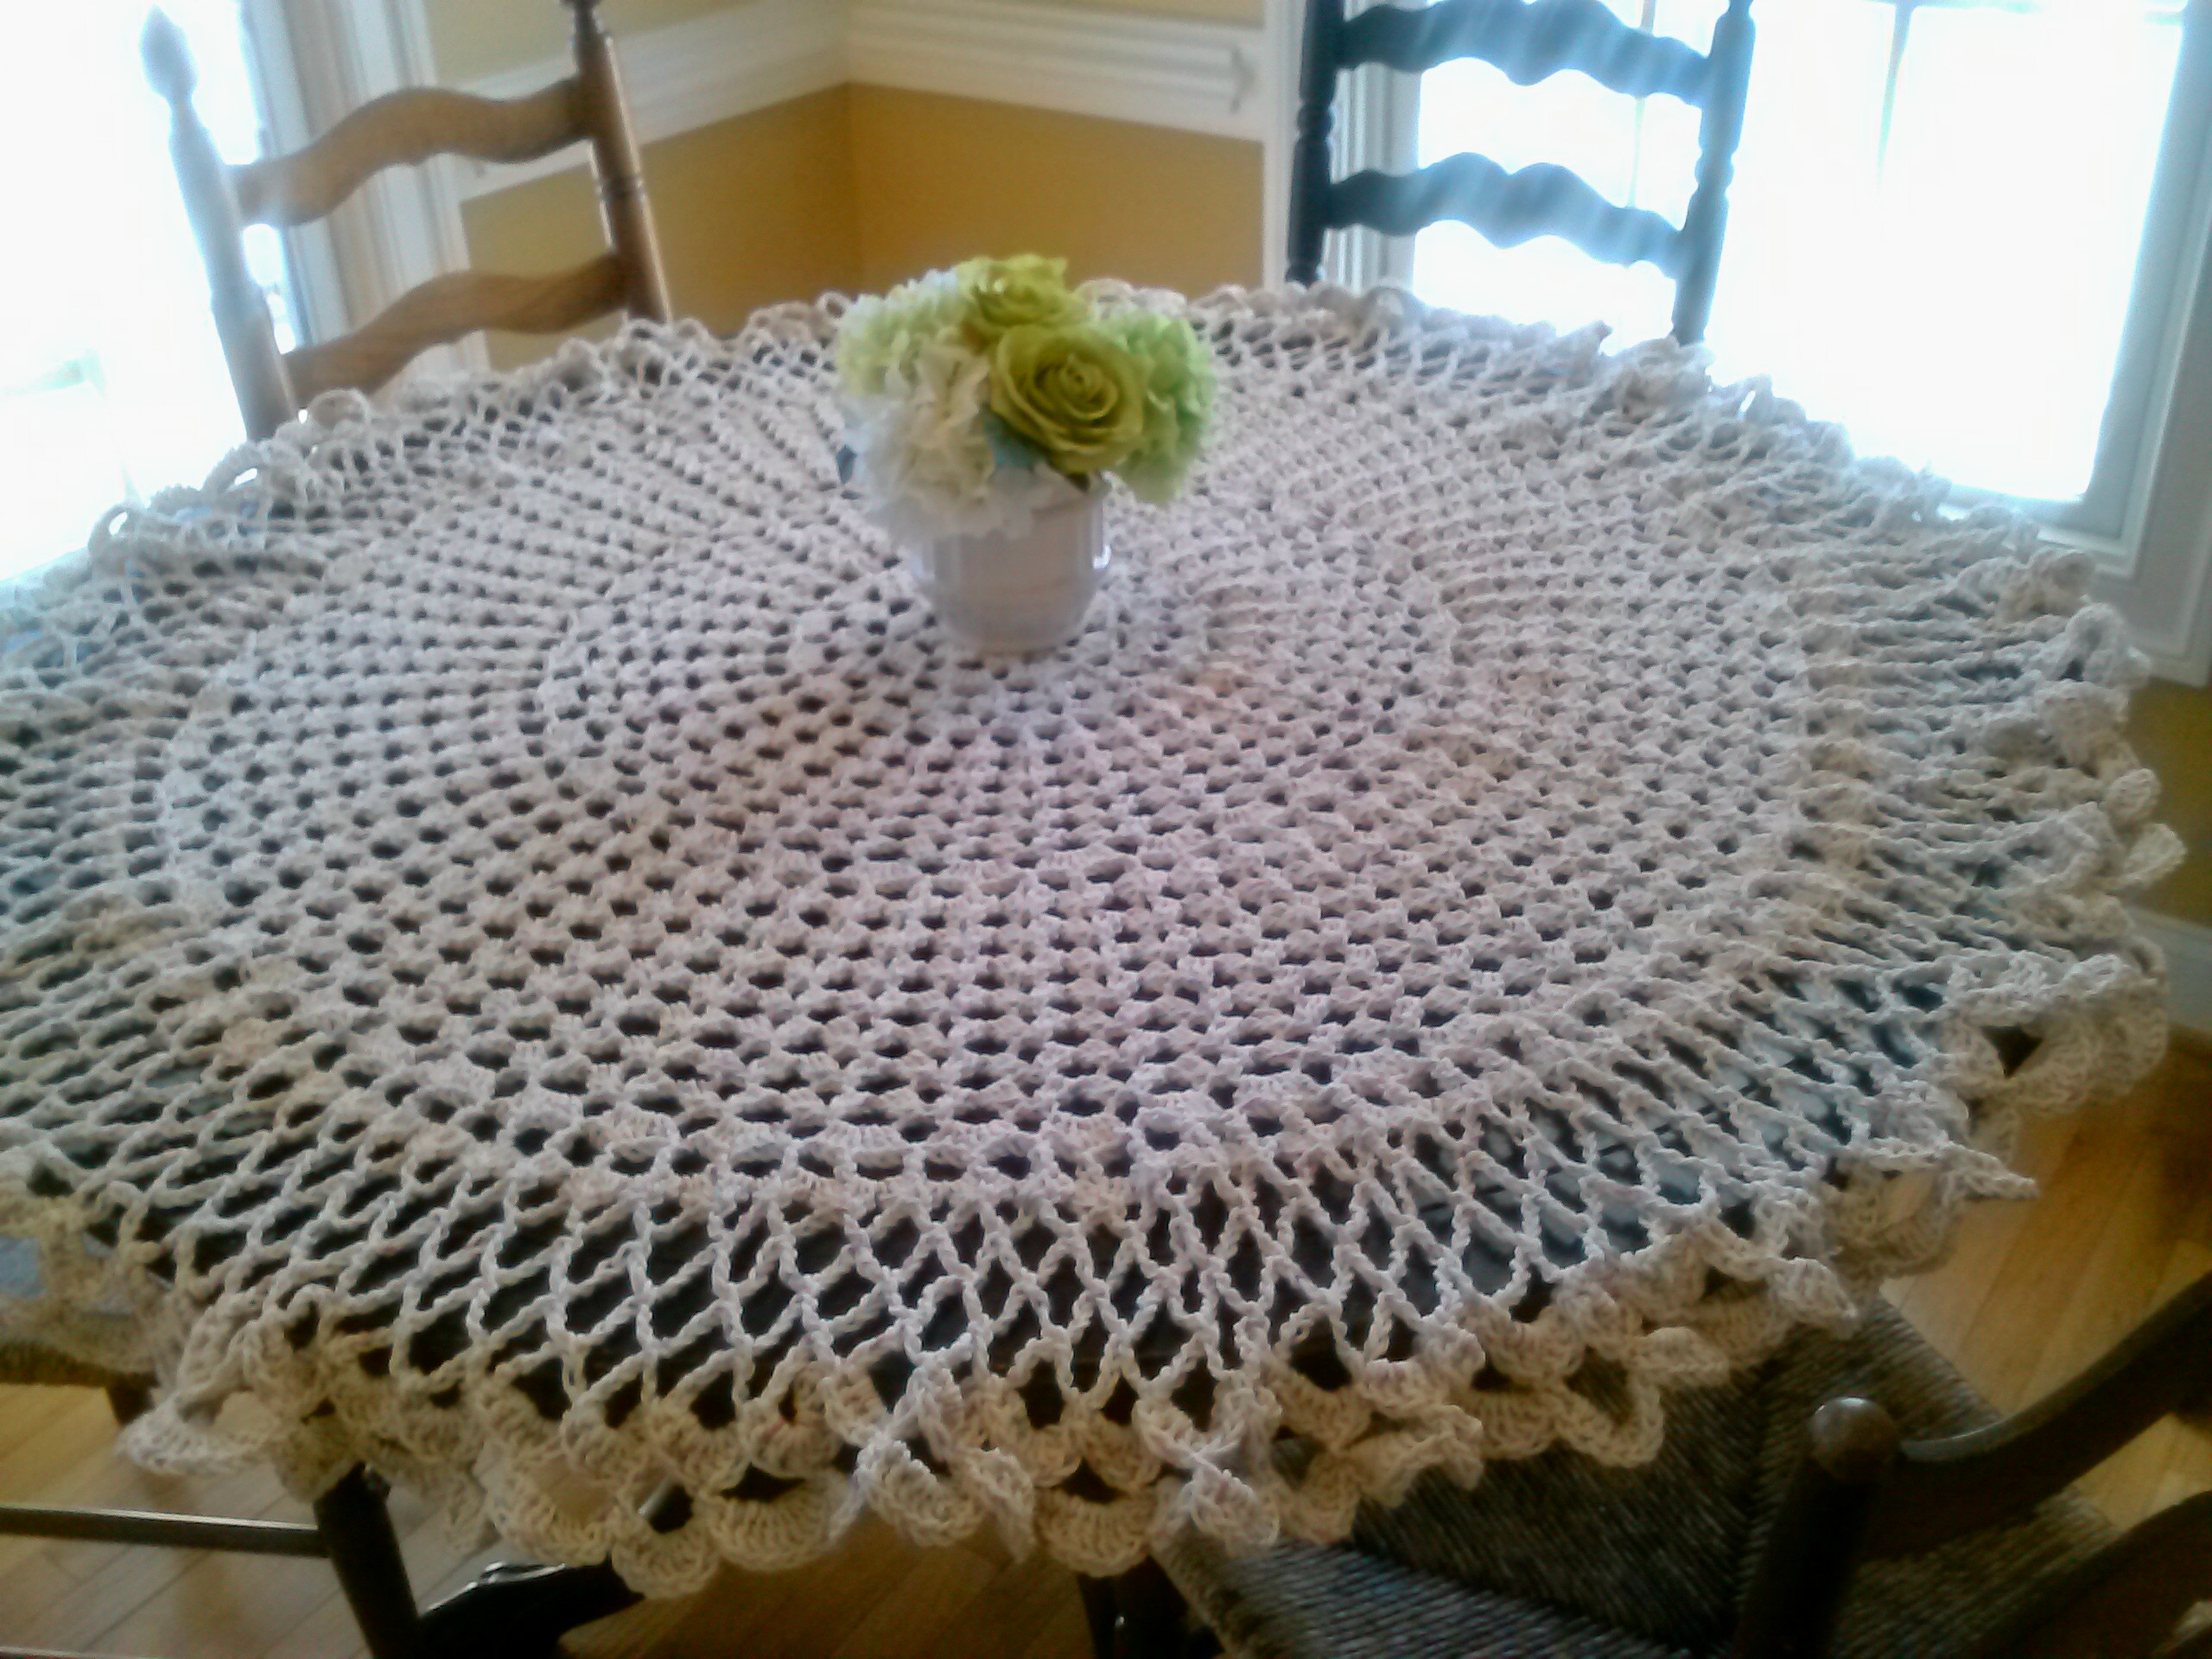 Free Crochet Tablecloth Patterns : Pin Crochet Art Tablecloth Pattern Free Elegant Decorative on ...